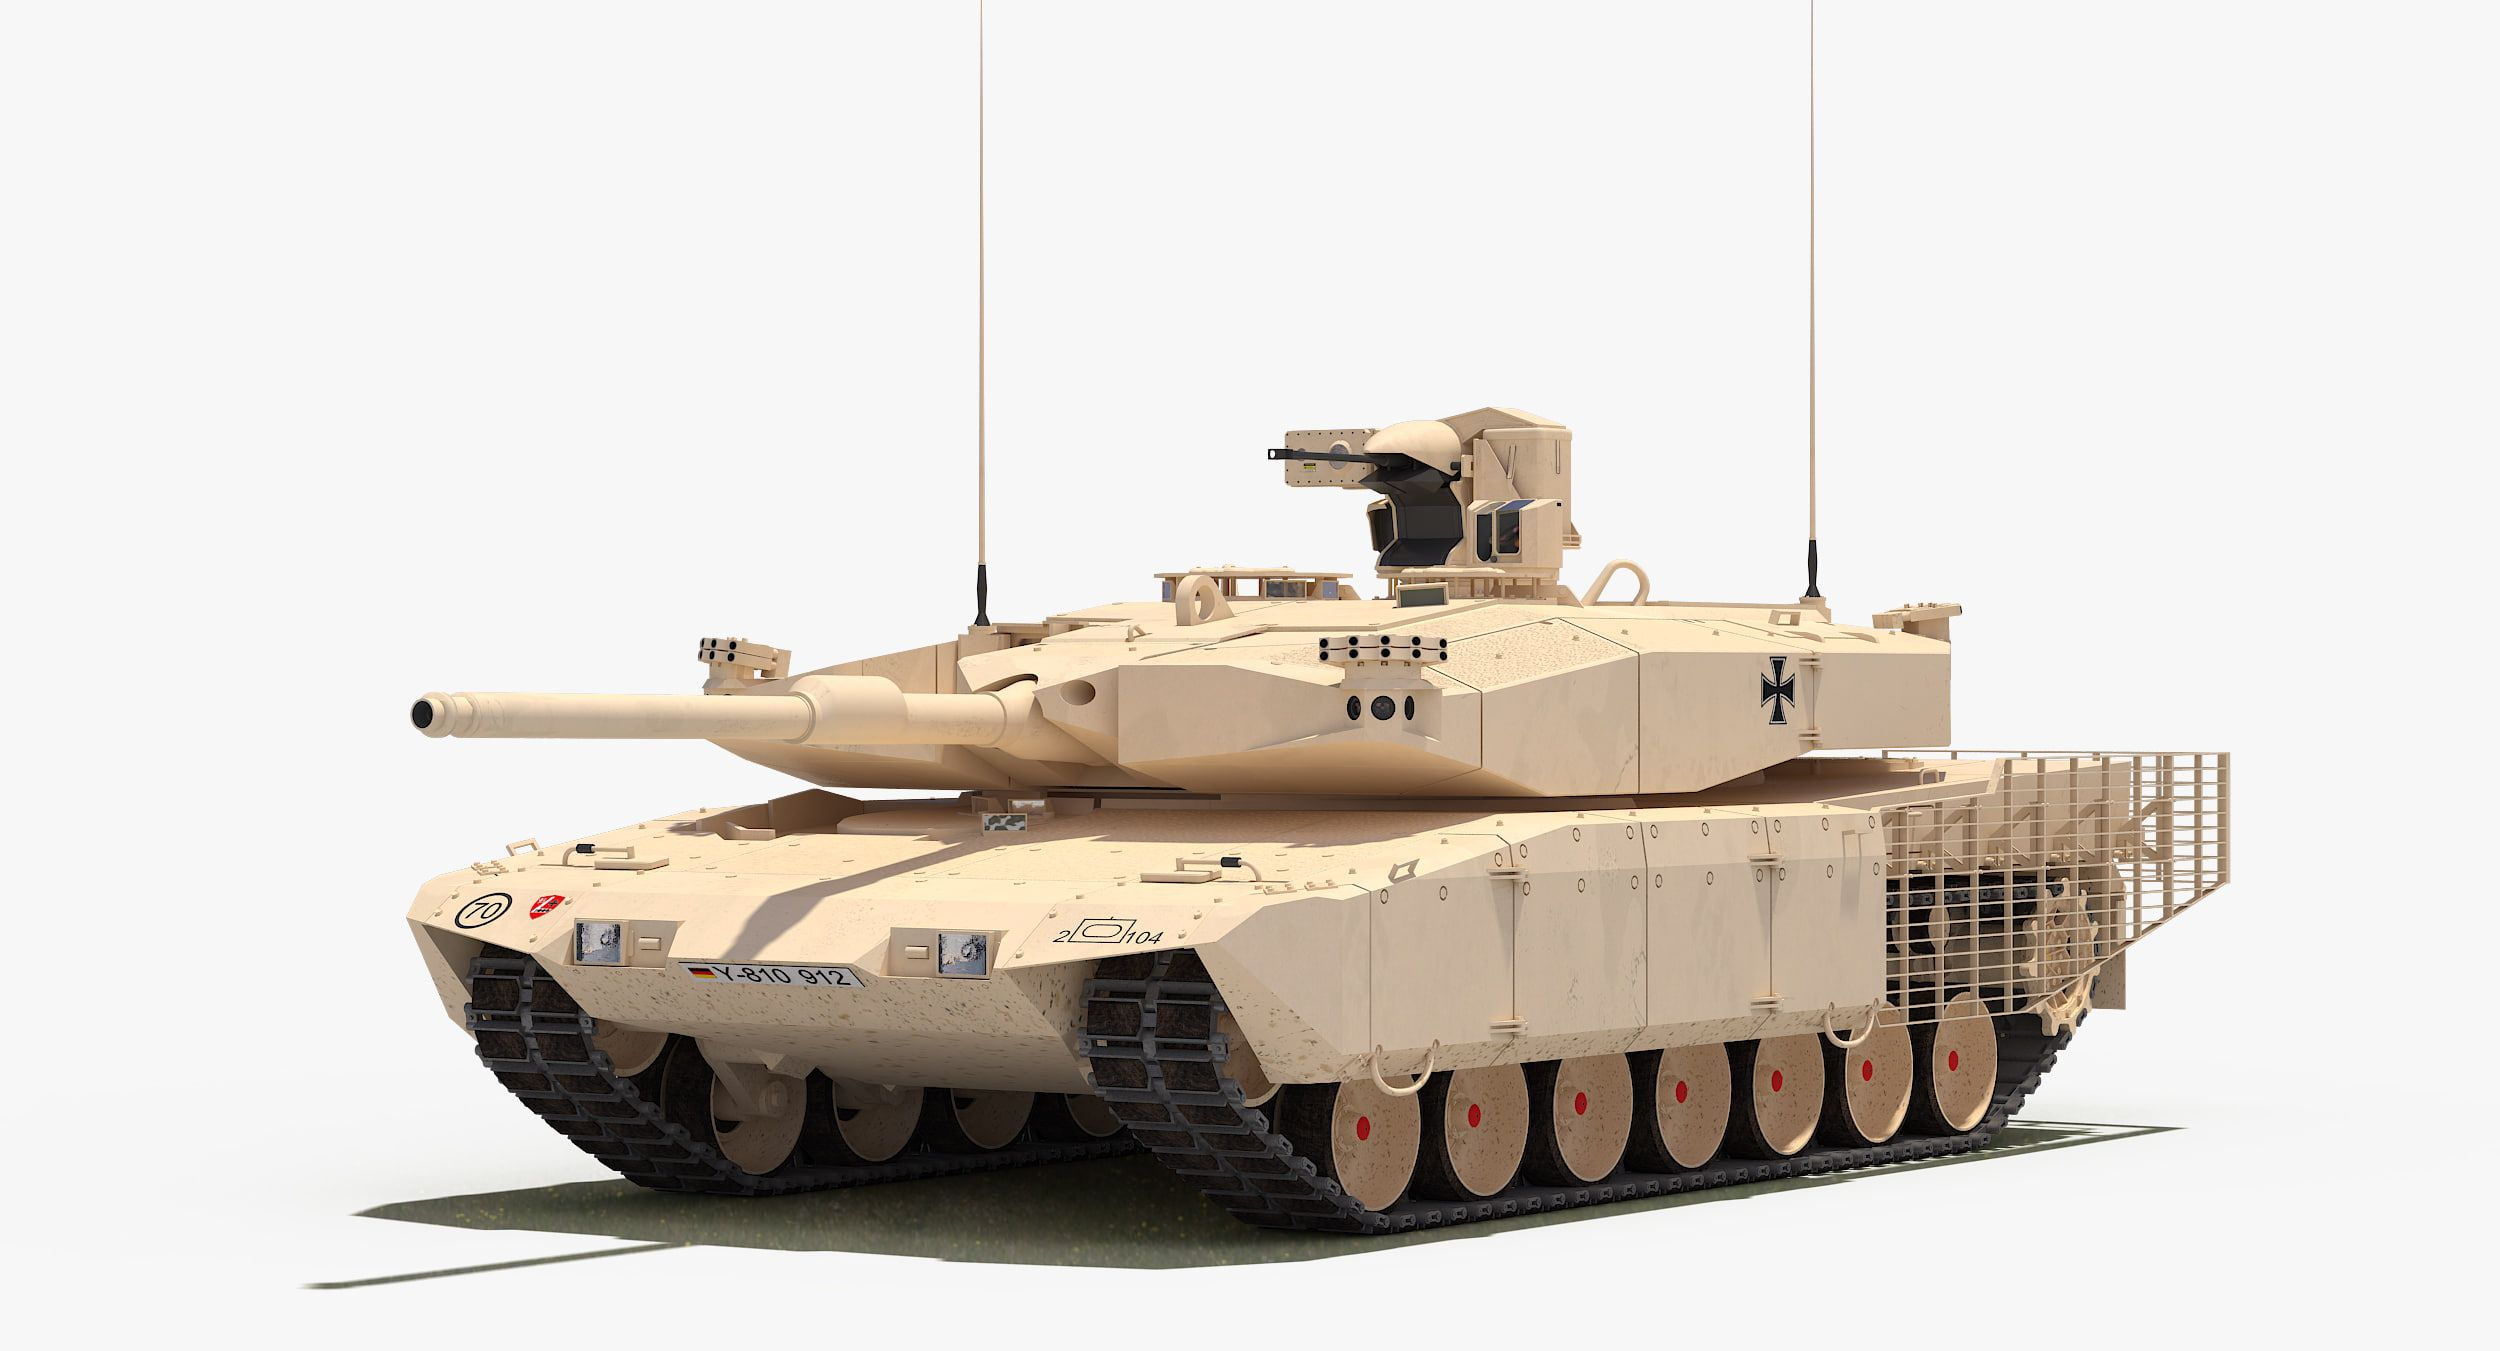 Leopard 2 Mbt Revolution 3d Max - Model Pancer